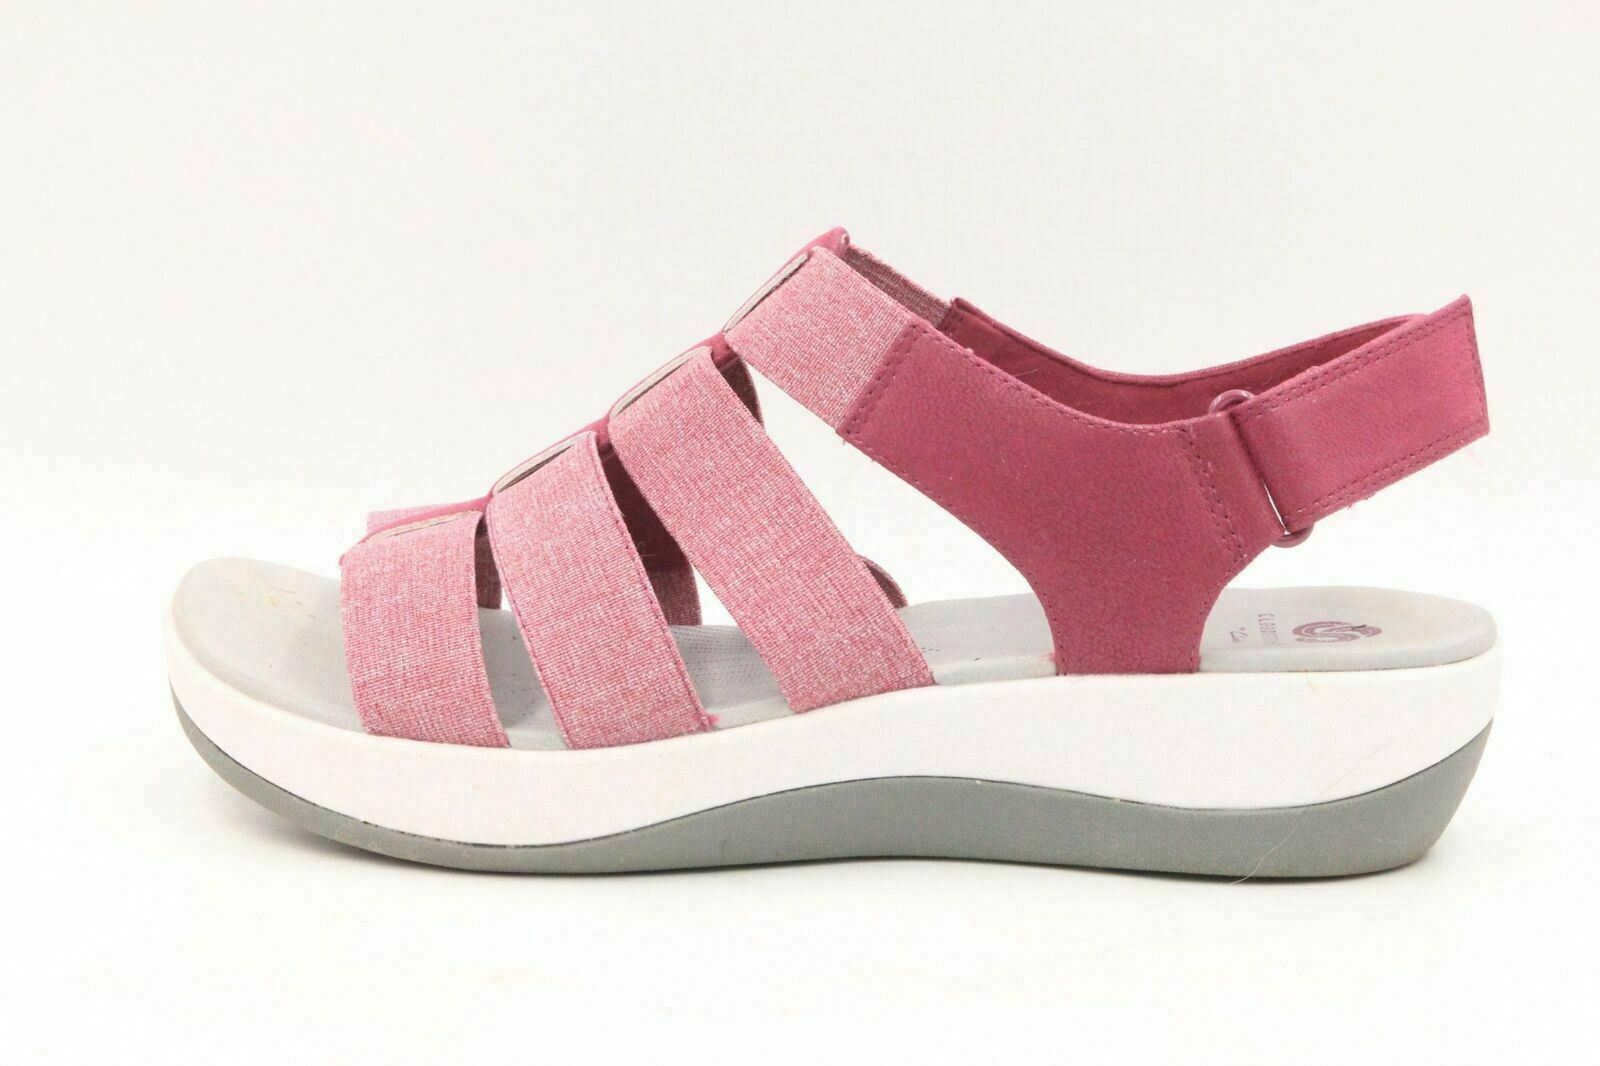 923933af914f CLOUDSTEPPERS BY CLARKS Arla Shaylie Women Sport Sandals Size 9M Fuchsia  Pink